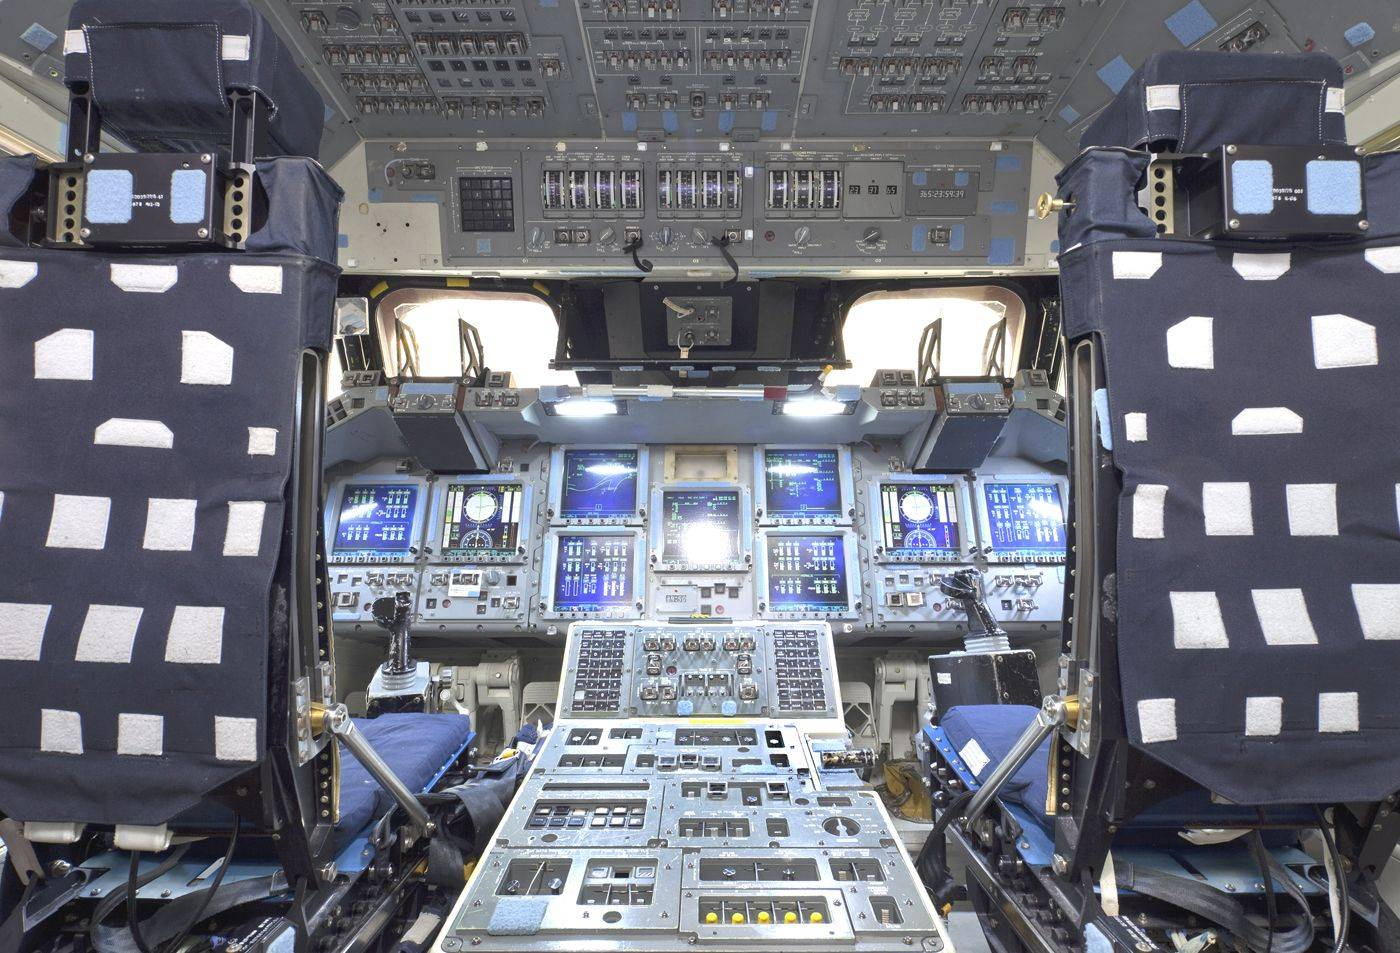 A look inside the cockpit of the space shuttle.